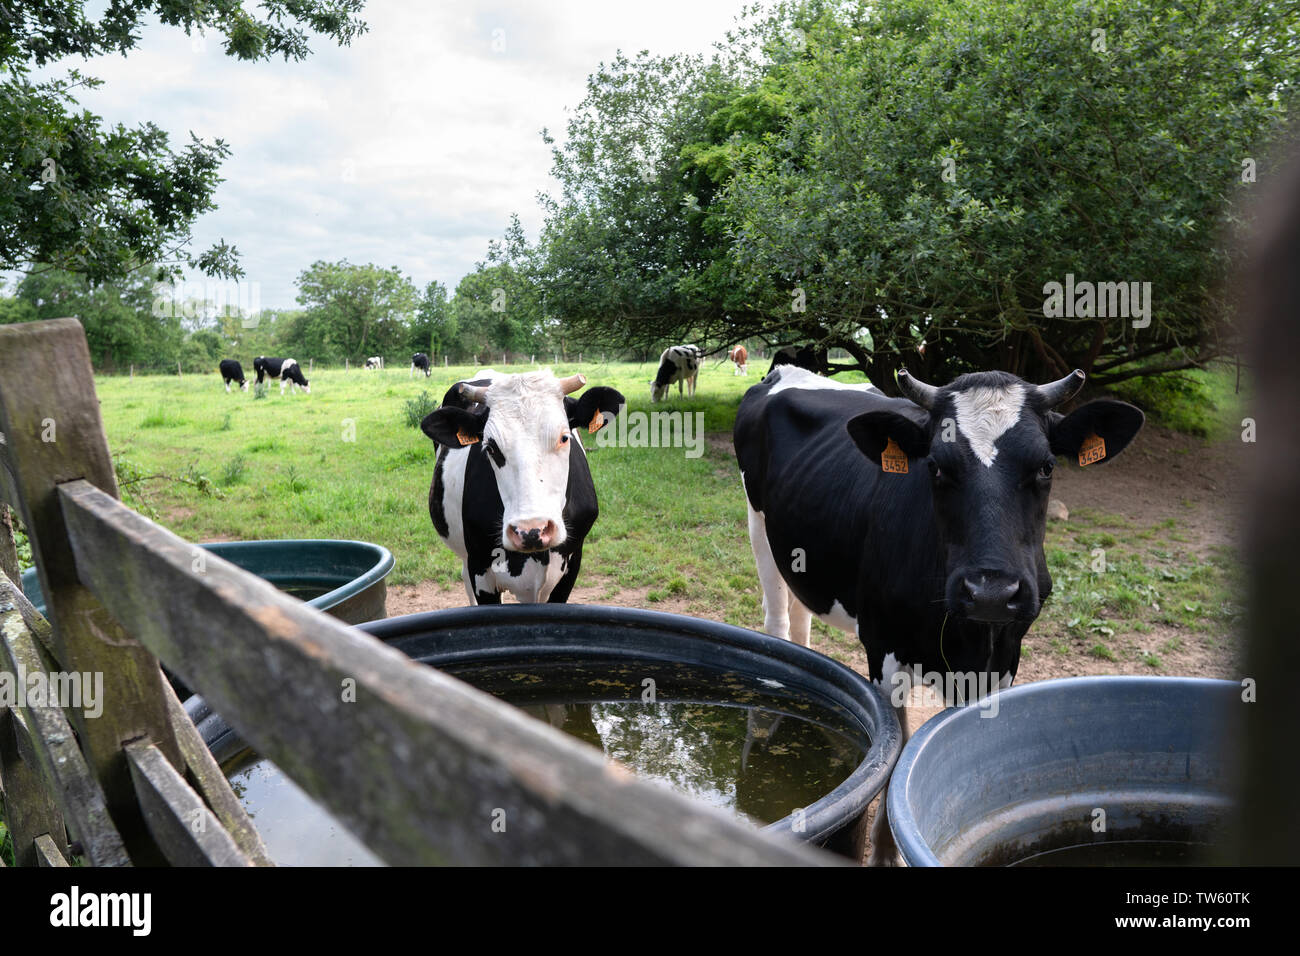 Cows looking through a wooden enclosure in Nornandy, France - green pasture in the background and a beautiful blue sky - Stock Image